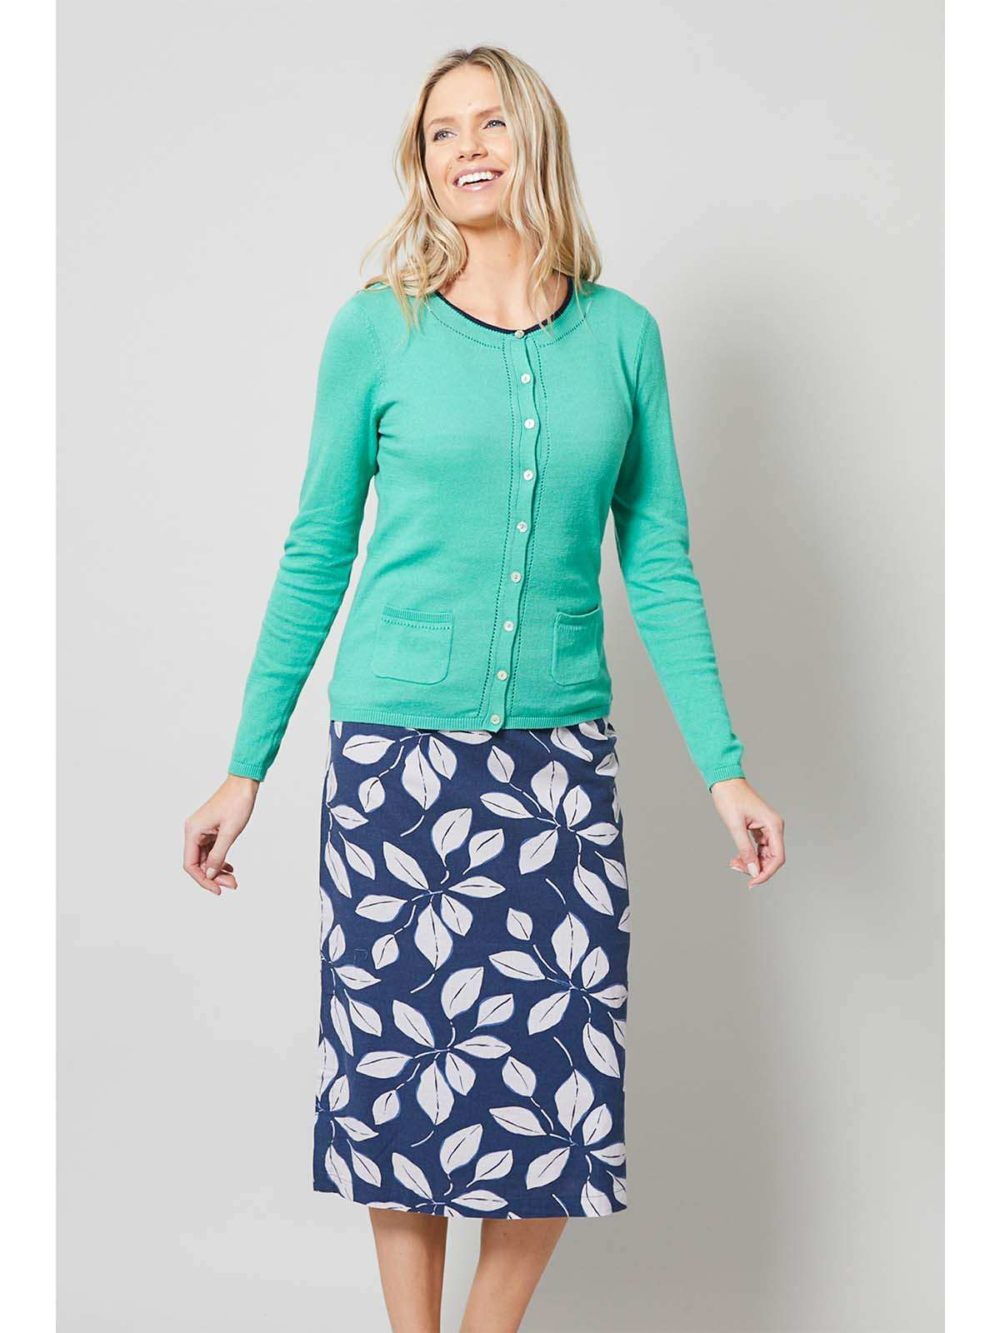 Midi Skirt Leaf Lily and Me Katie Kerr Women's Clothing